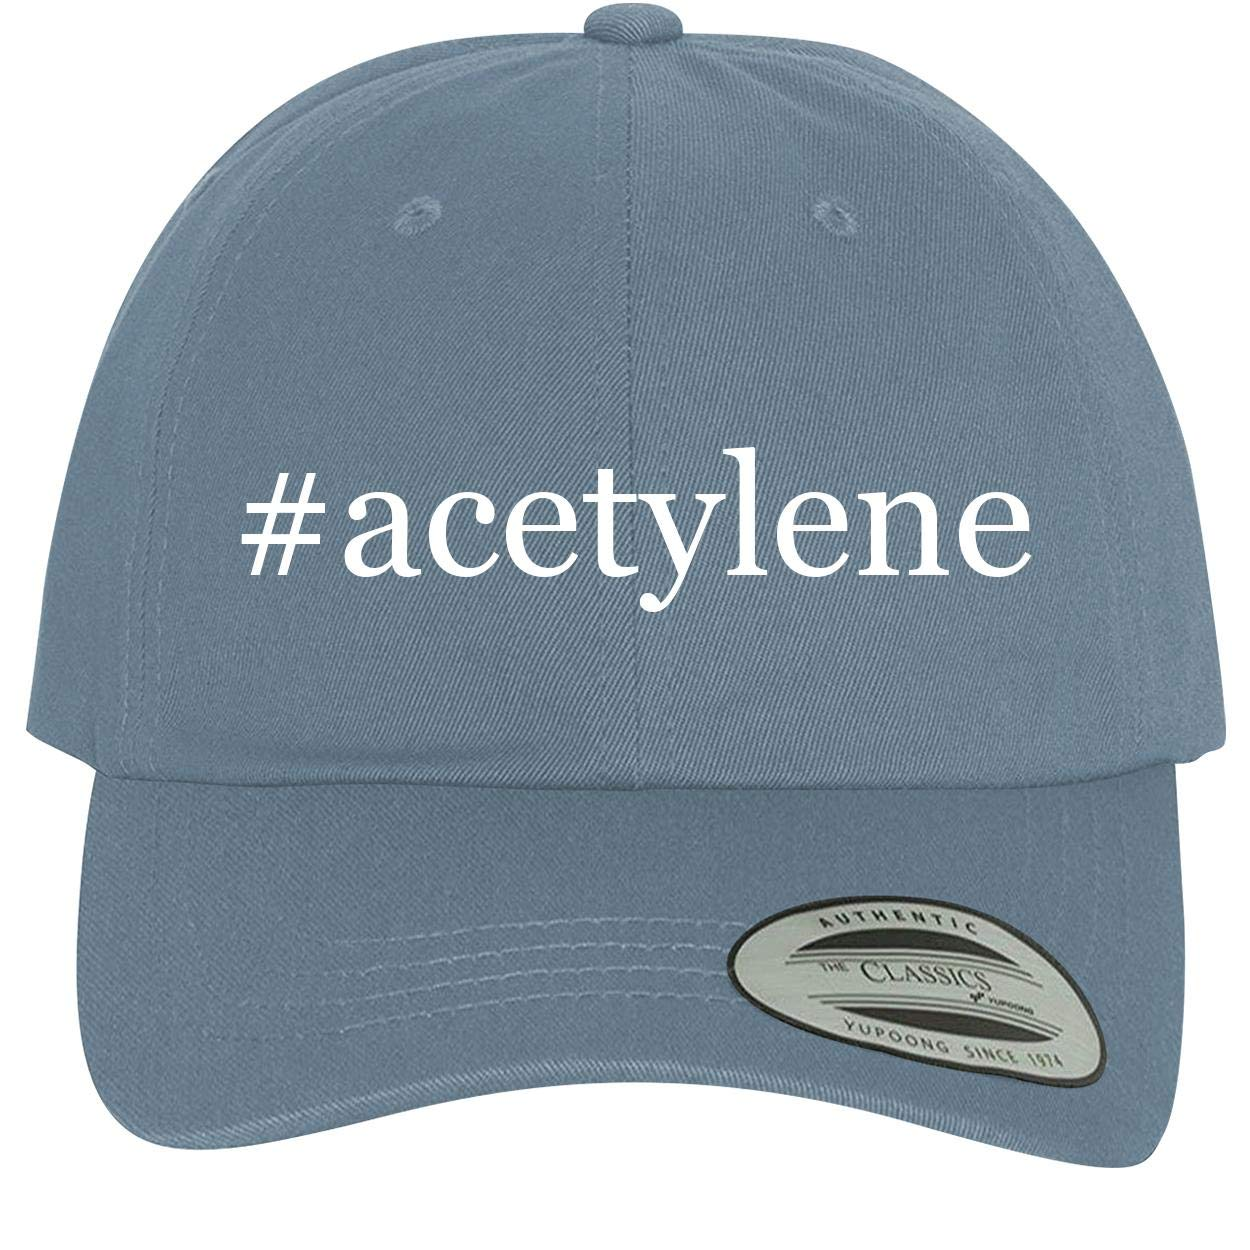 Comfortable Dad Hat Baseball Cap BH Cool Designs #Acetylene